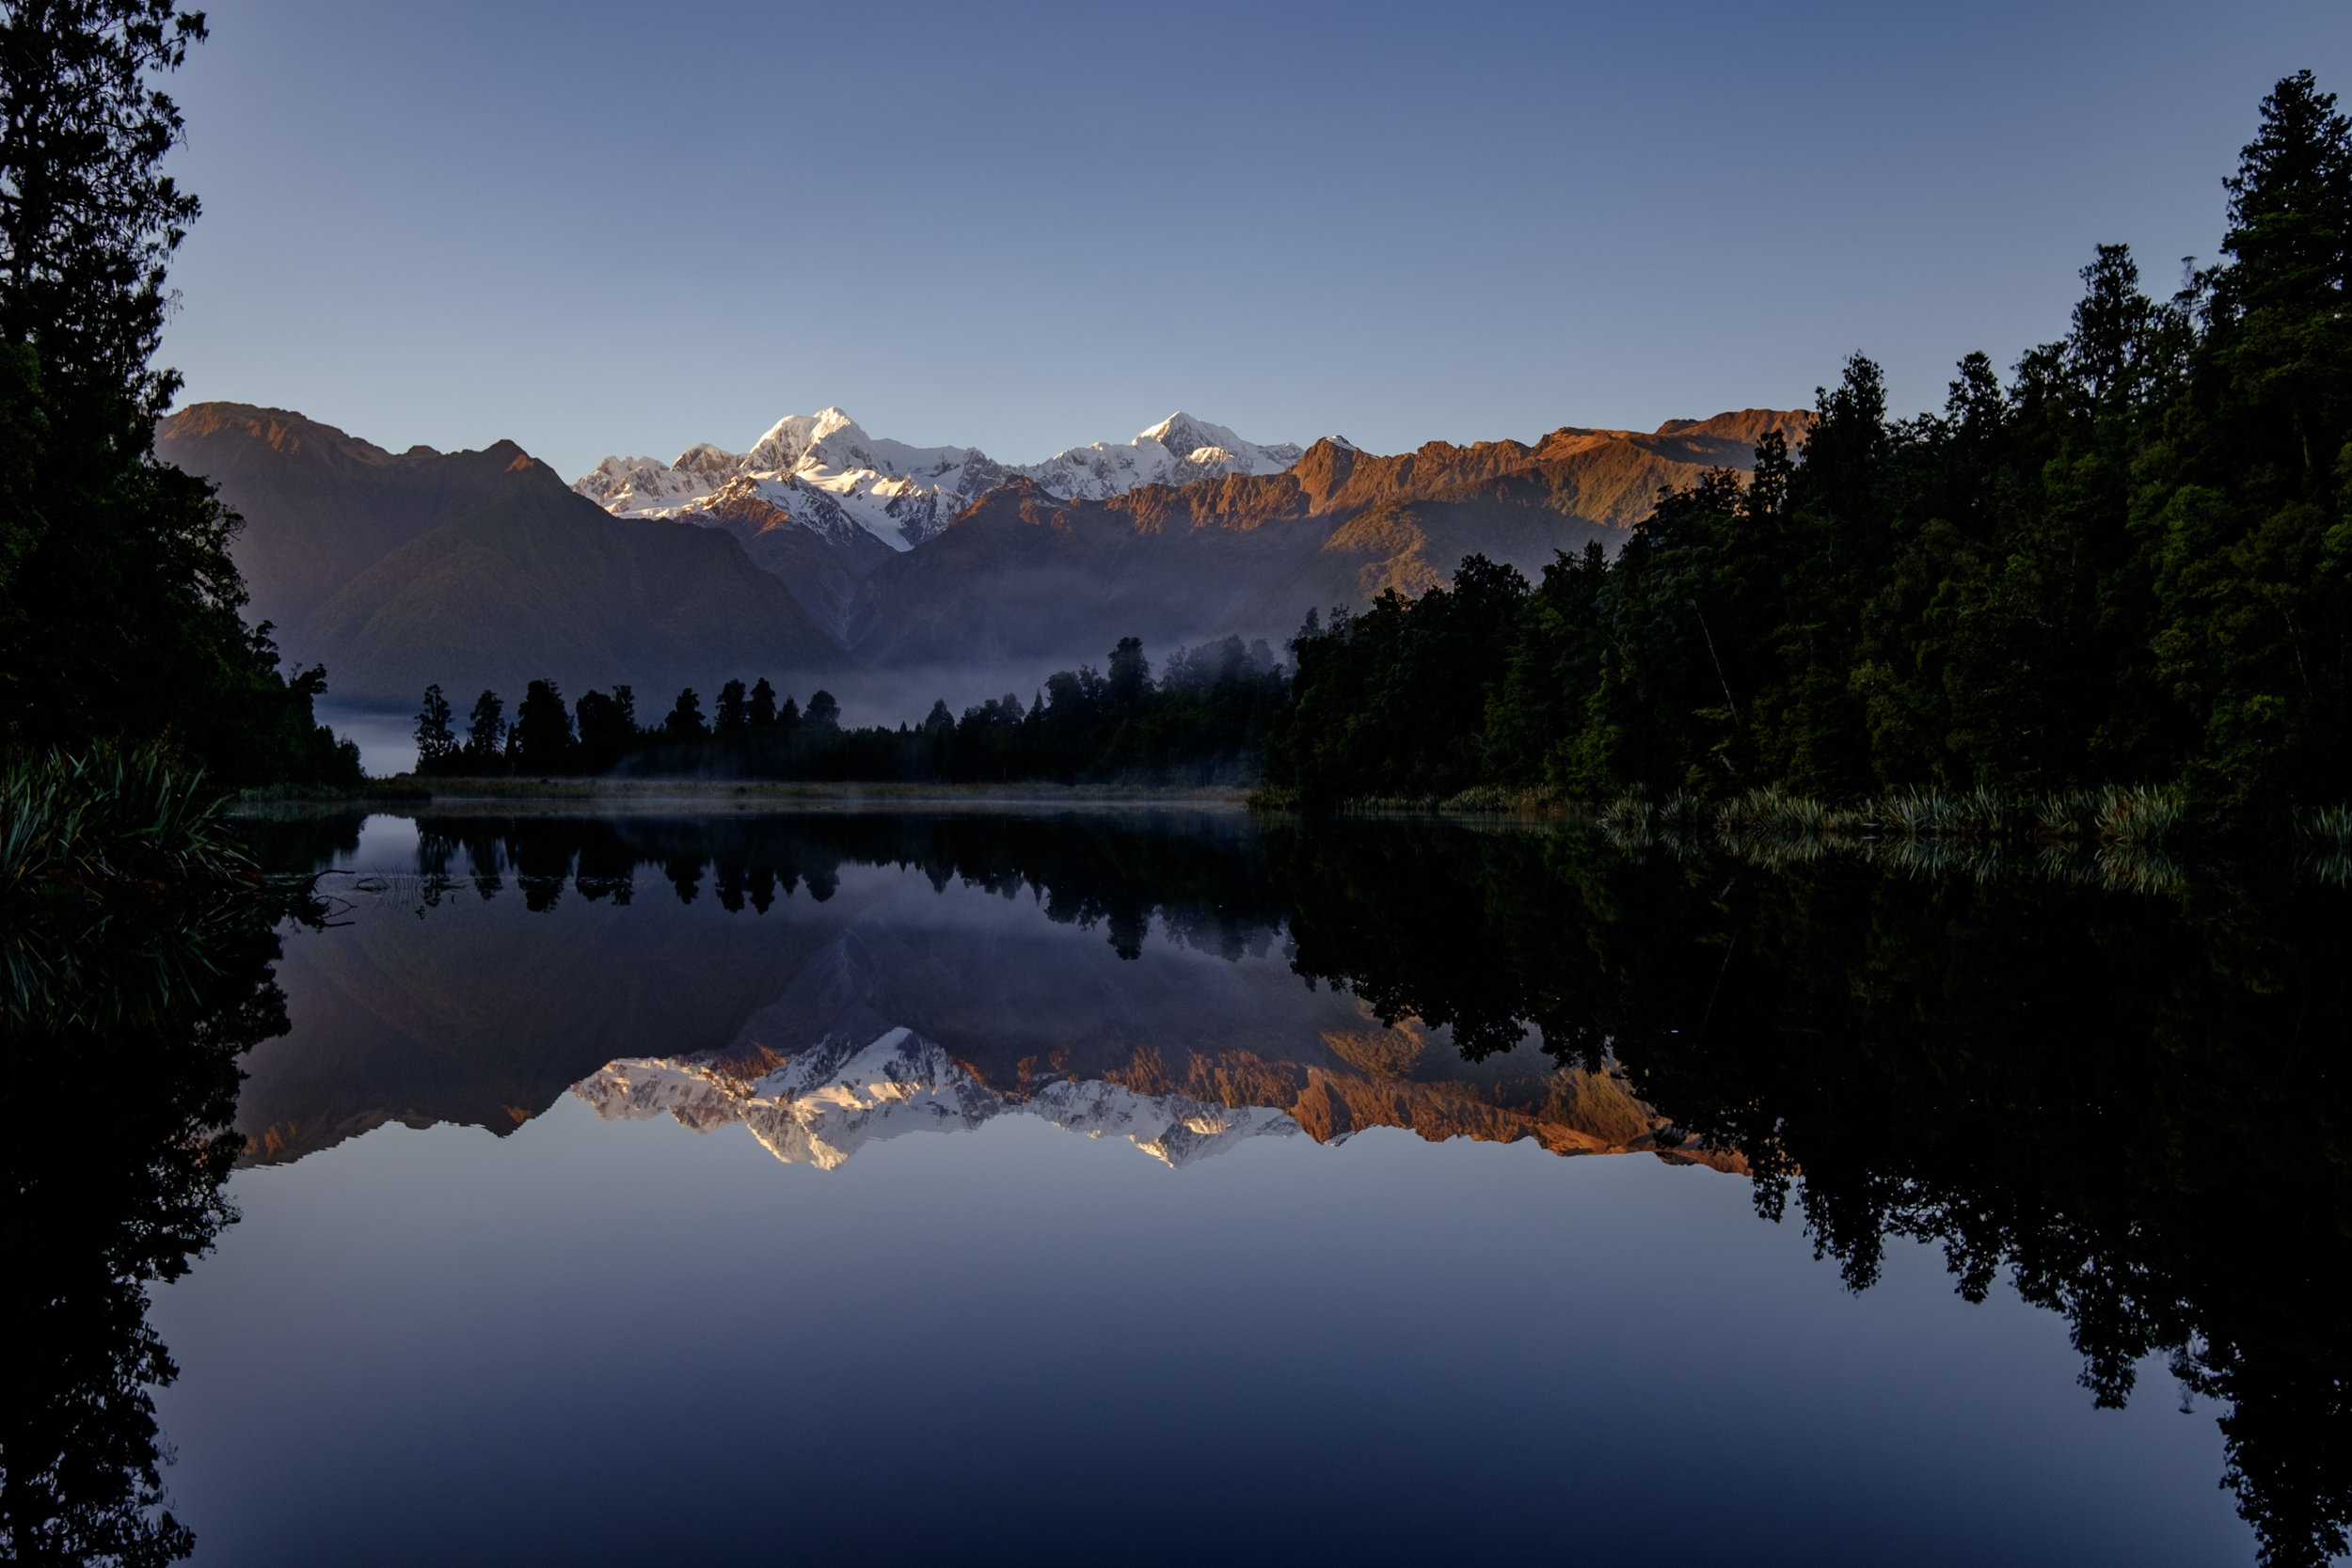 Glaciers on Lake Matheson - 24mm, F8, 1/70s